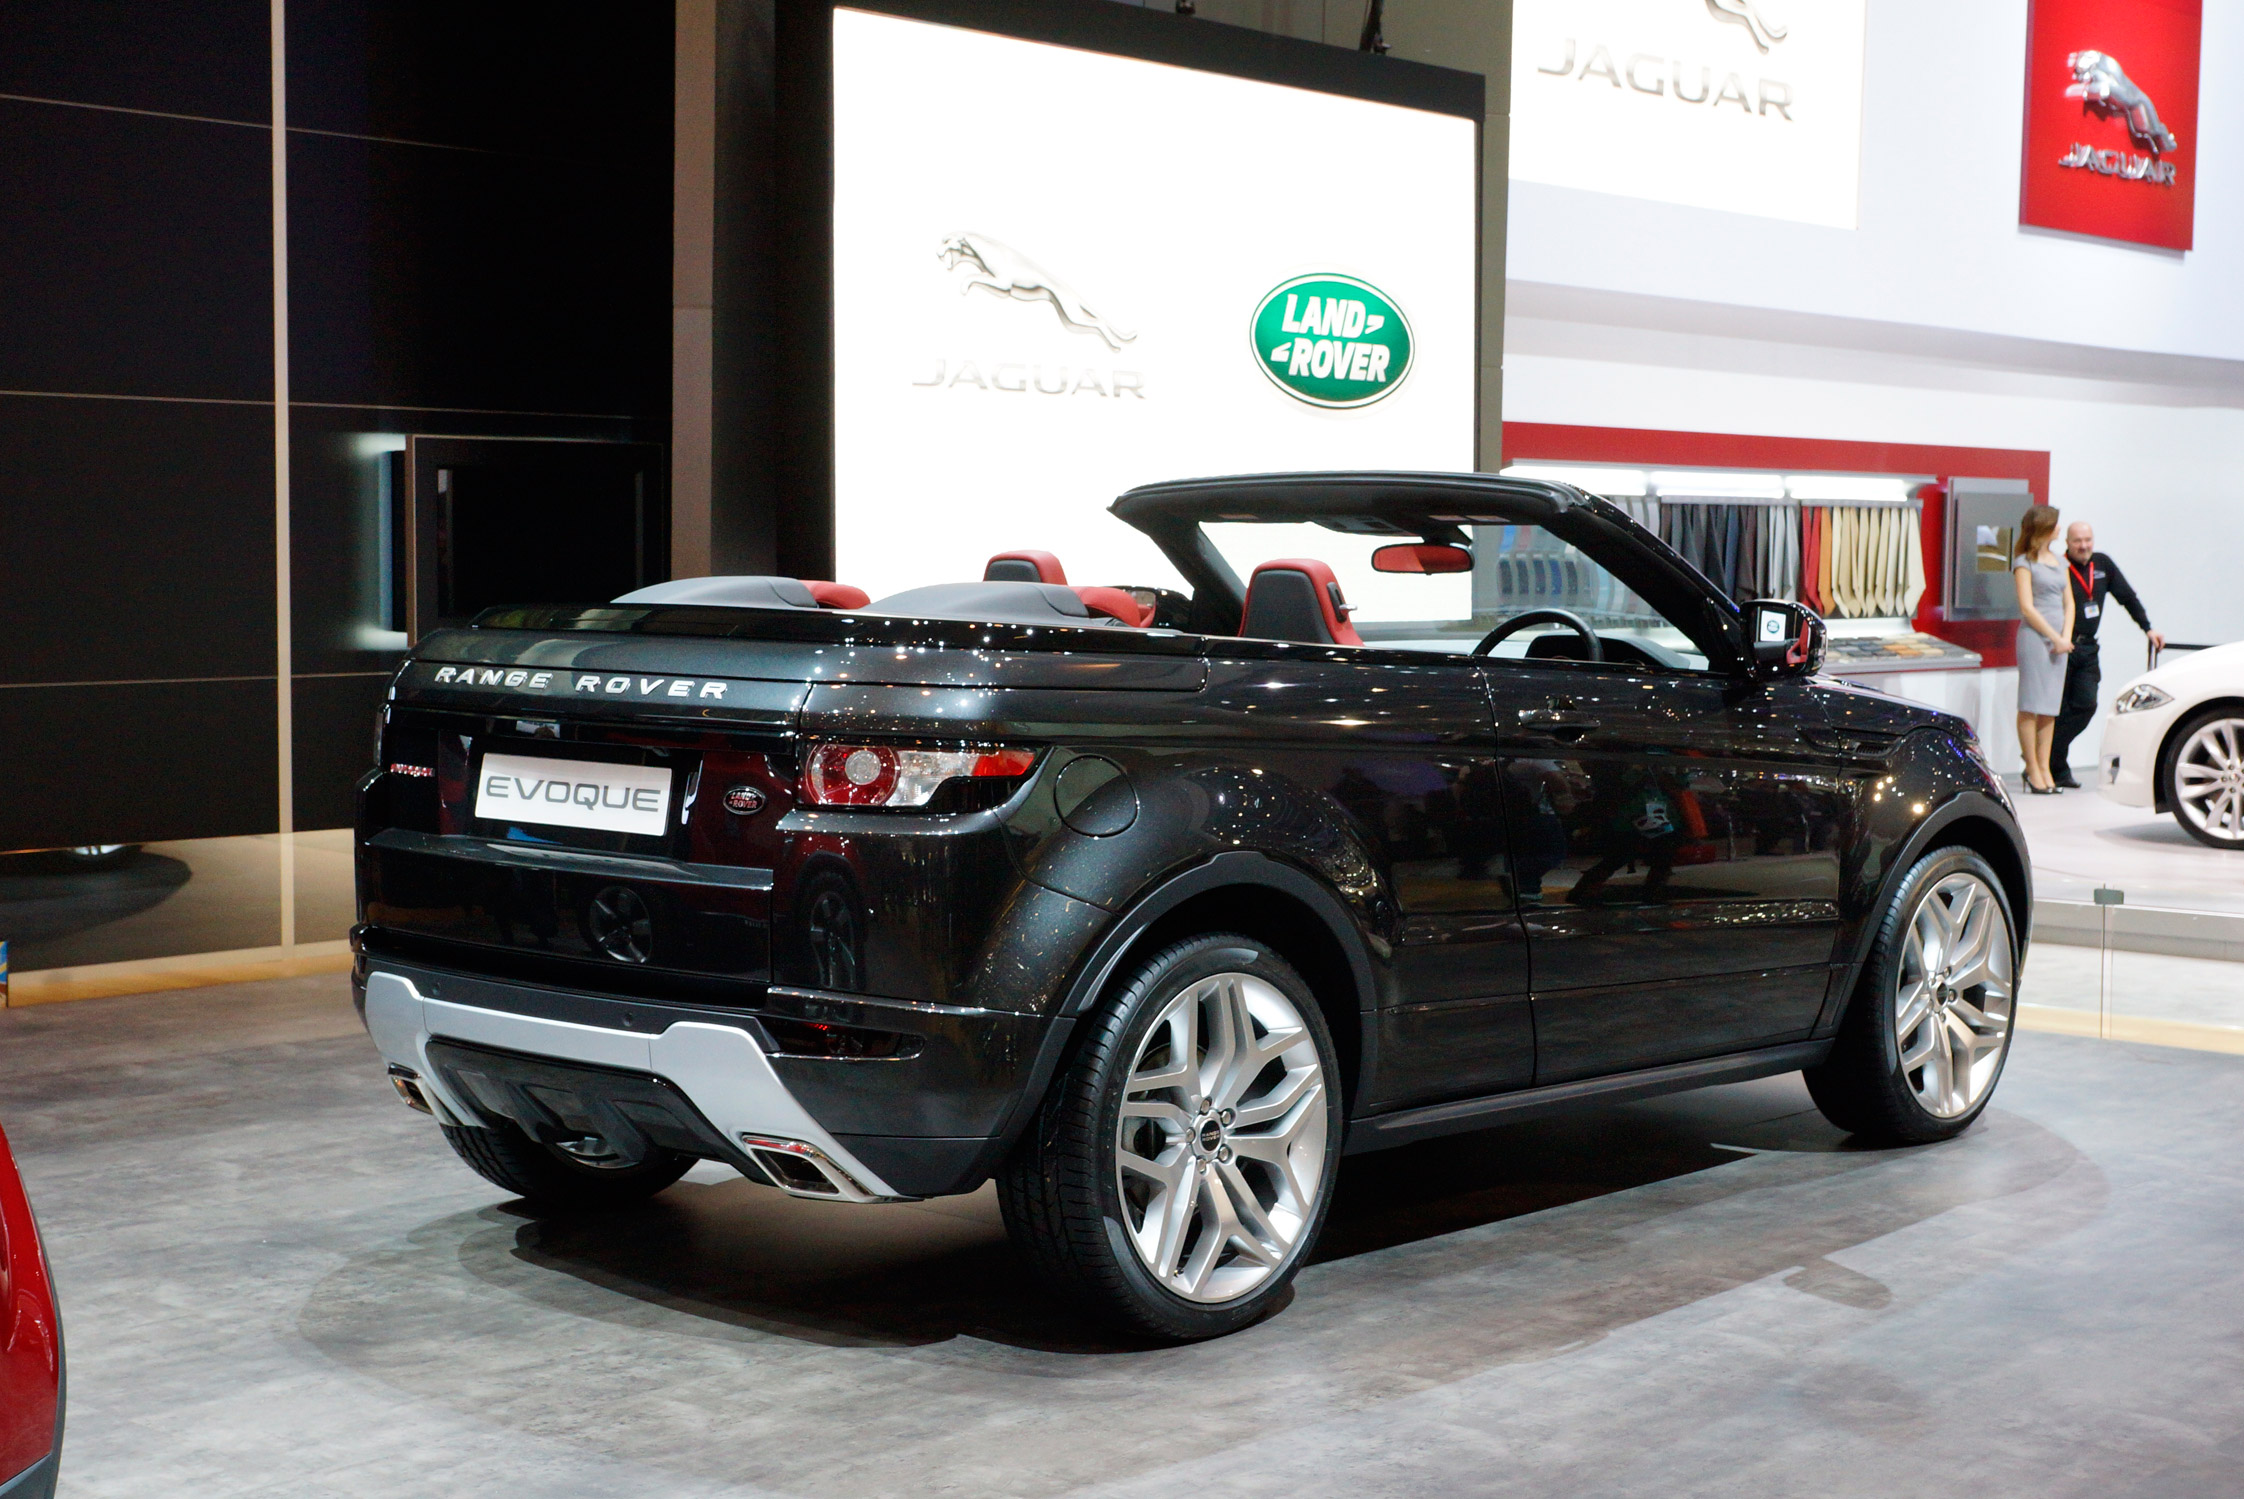 Rover cabriolet photo - 1